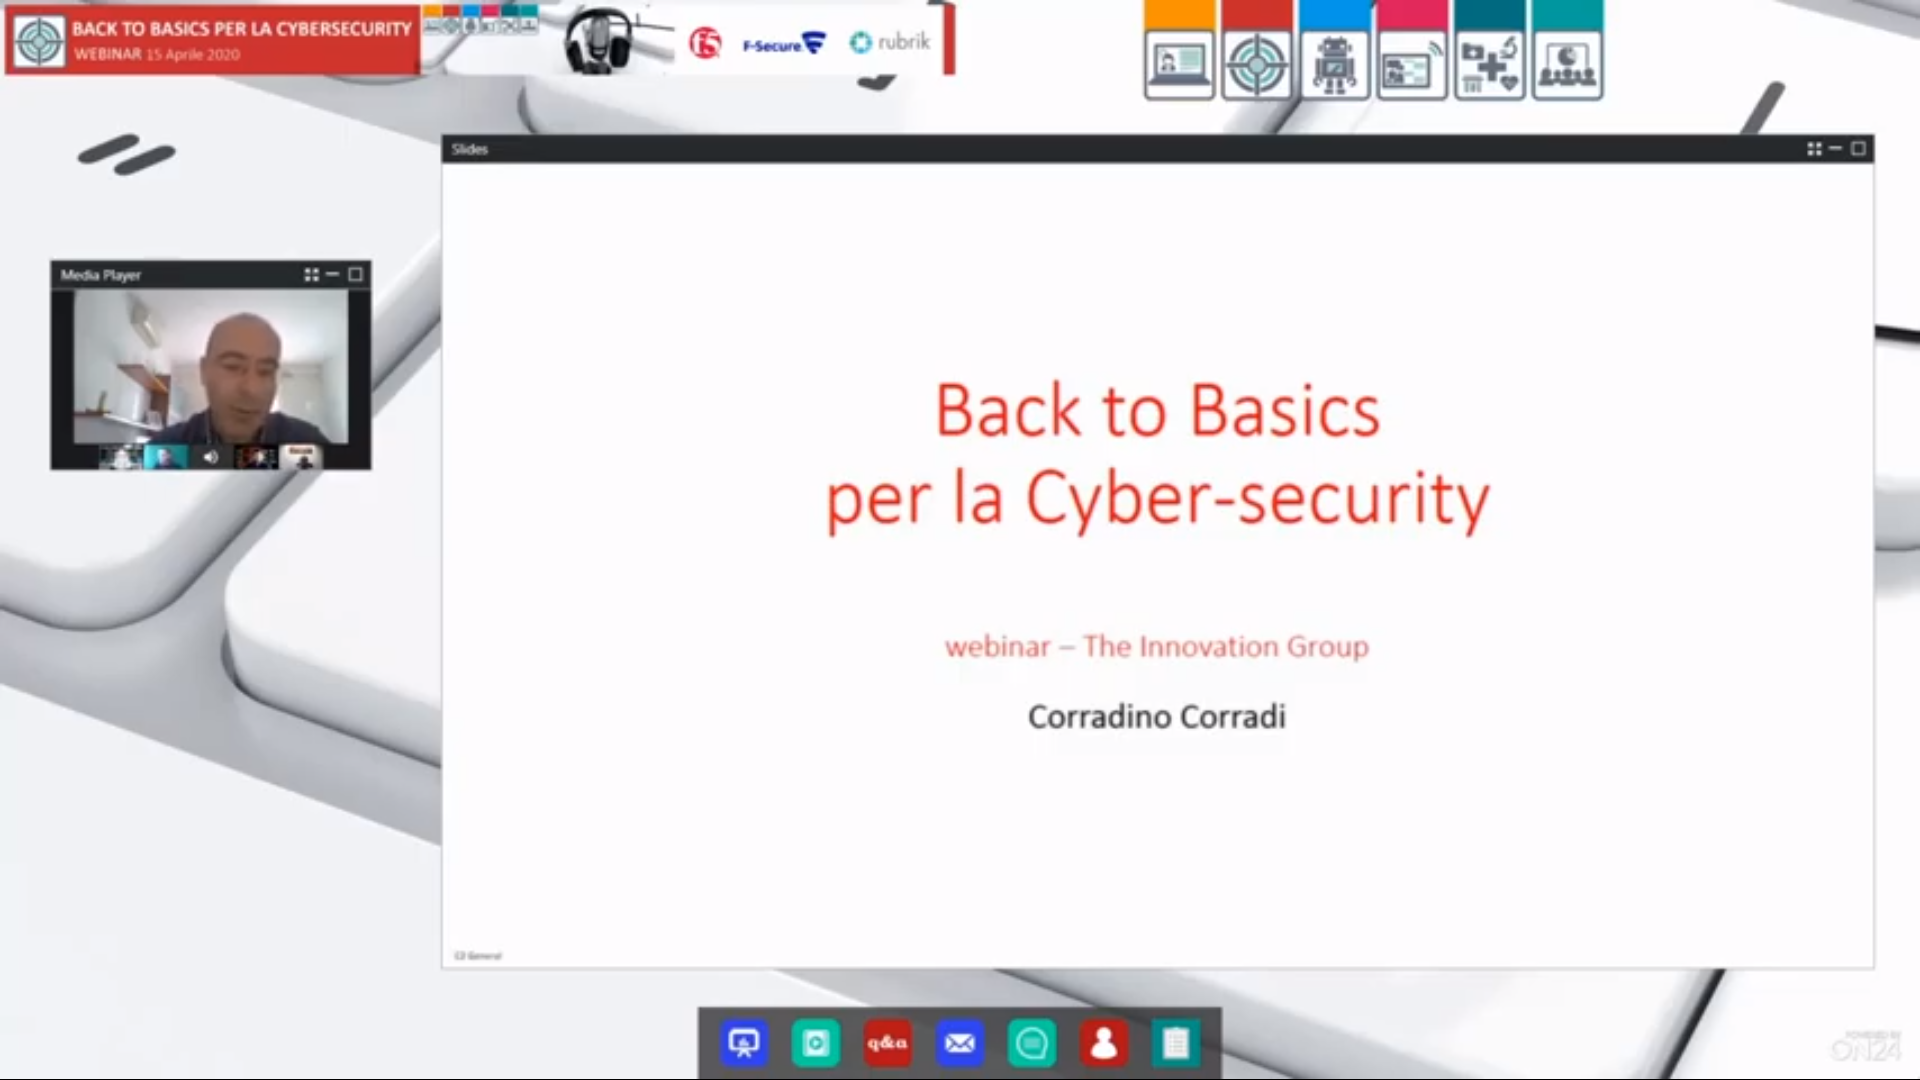 Webinar online: Back to Basics per la cybersecurity